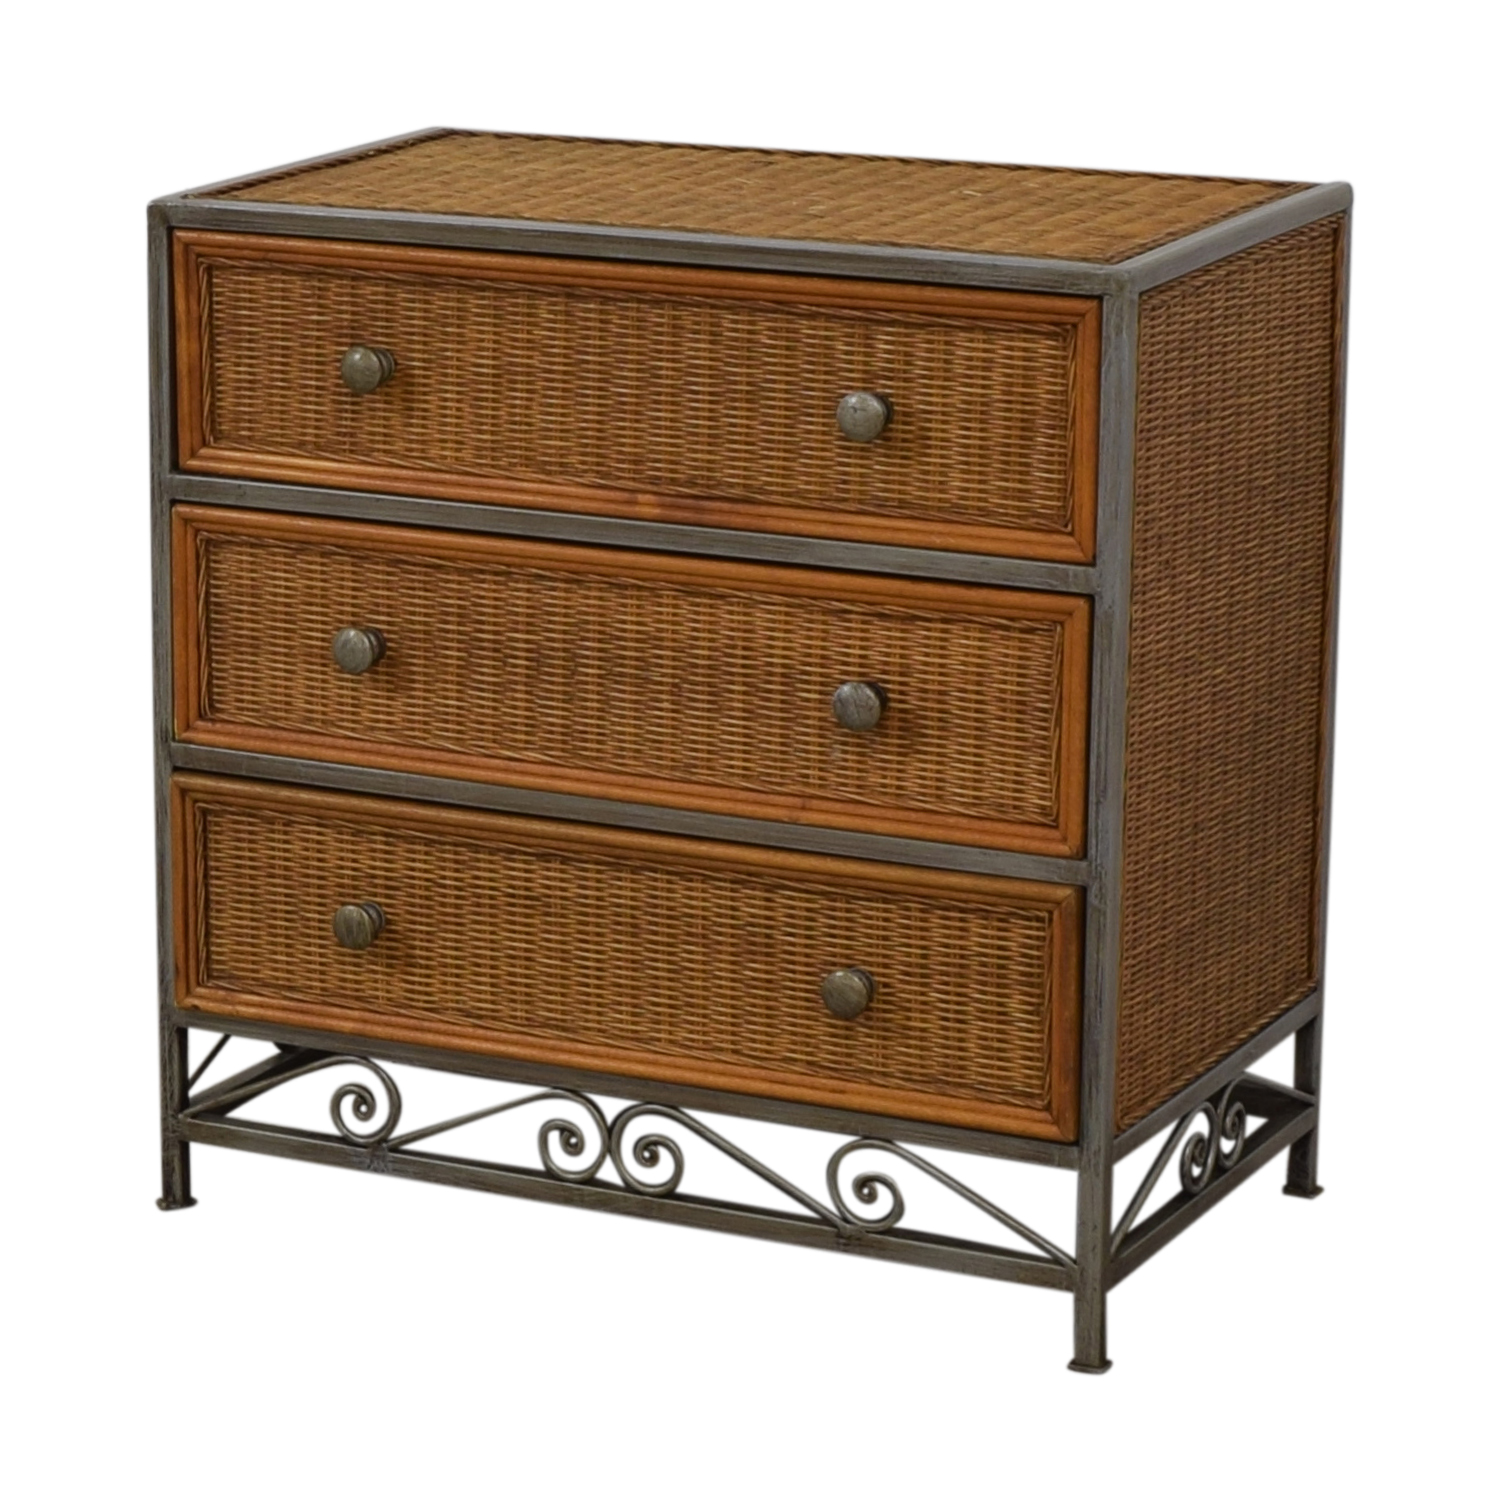 Pier 1 Imports Pier 1 Imports Miranda Three-Drawer Wicker Dresser coupon